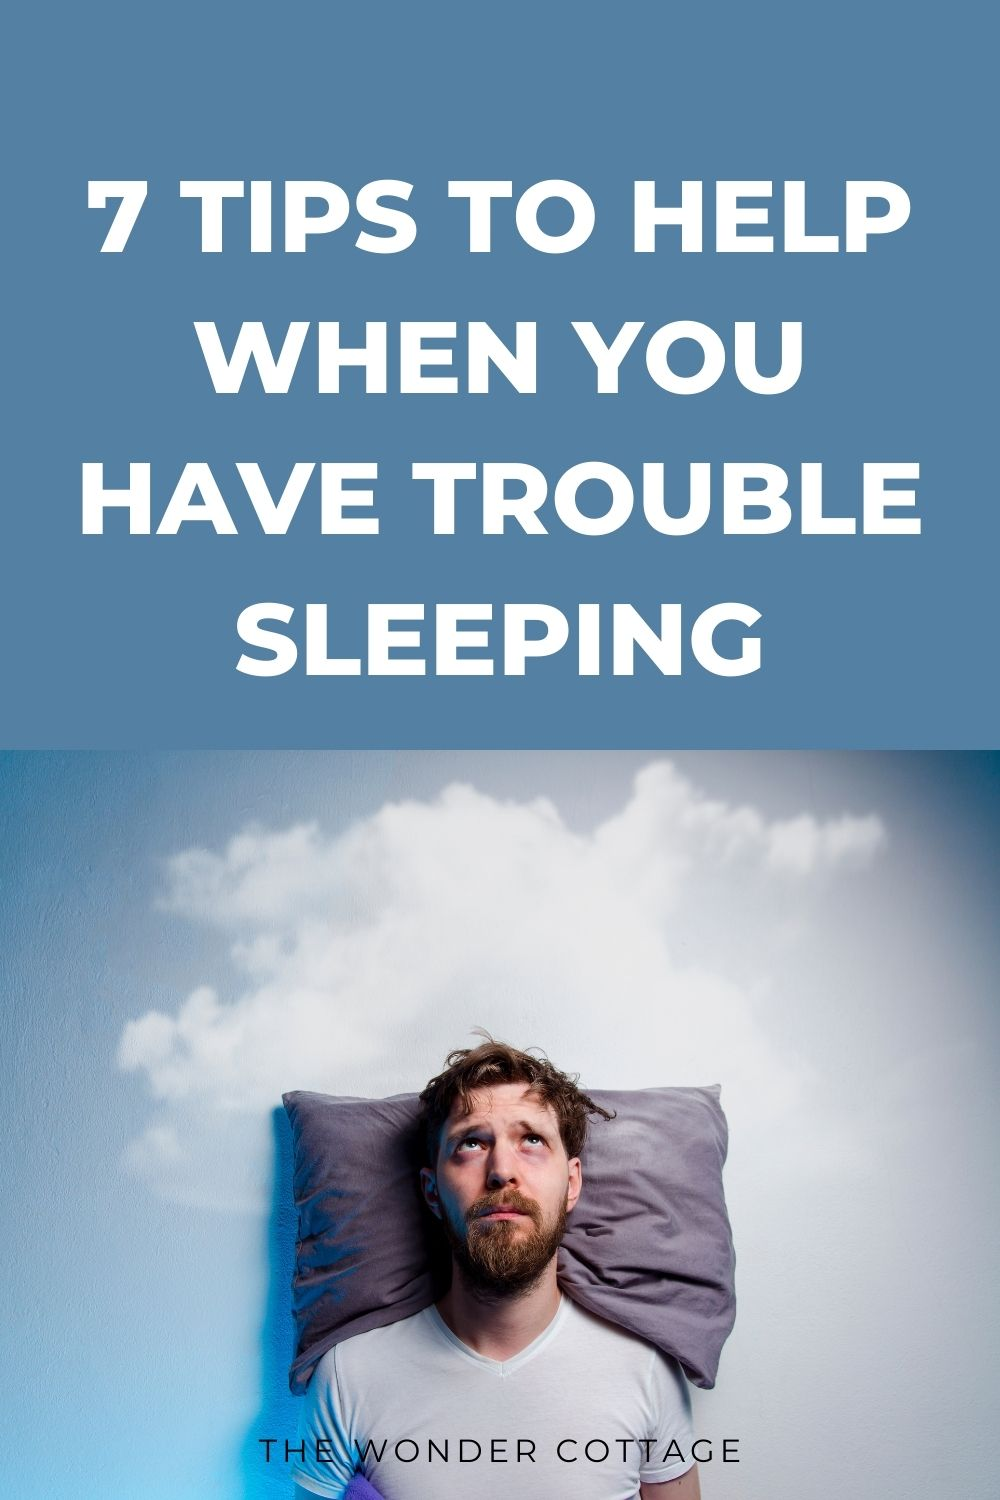 7 btips to help when you have trouble sleeping